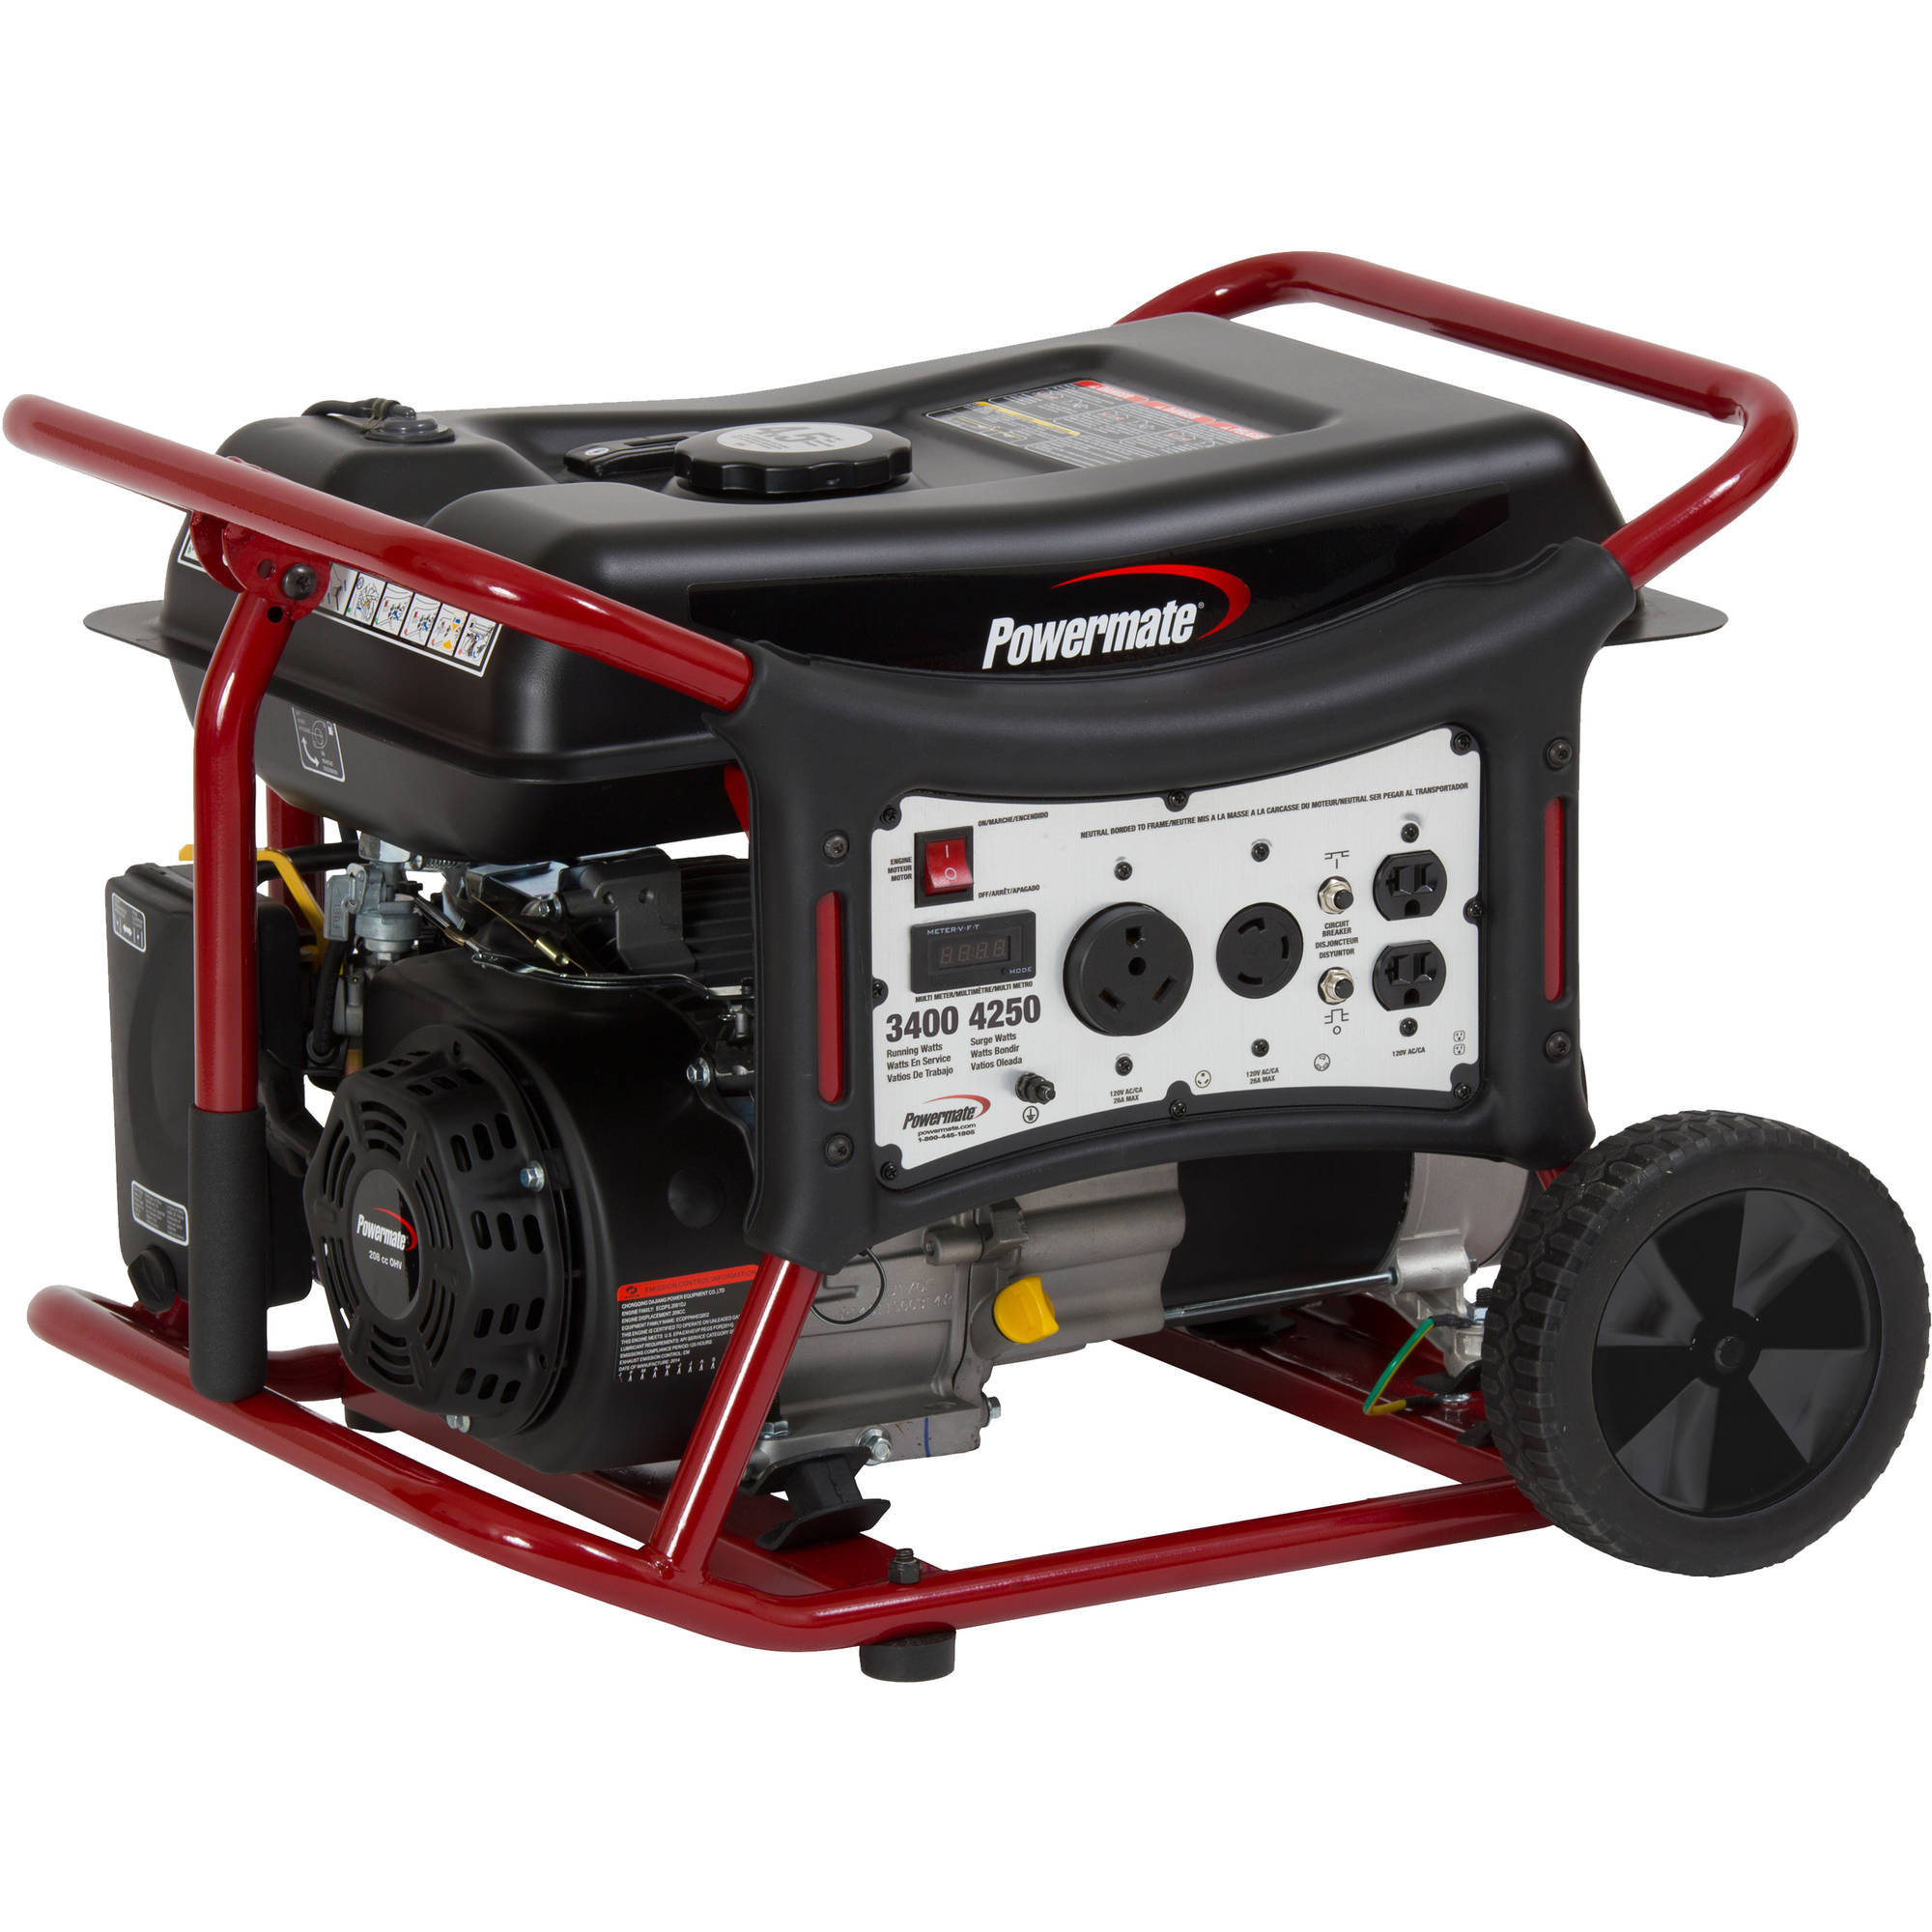 Powermate all generators.